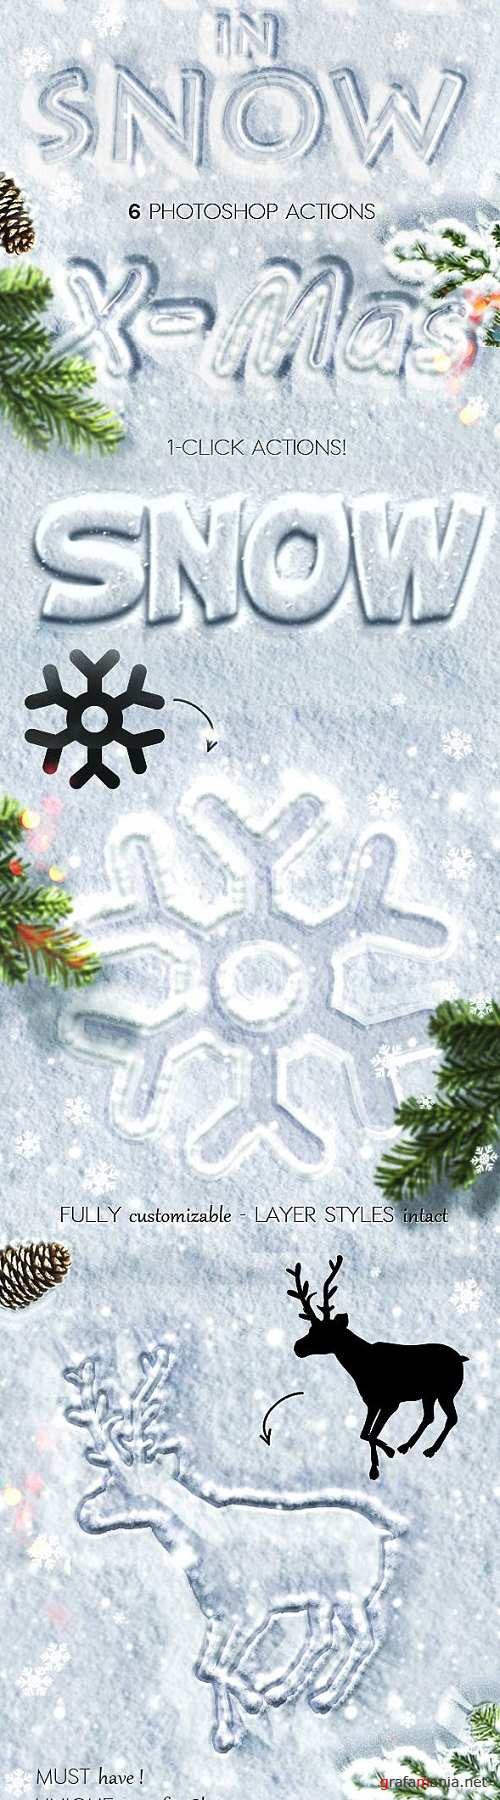 Snow Writing Photoshop Actions for Winter Time - 9442971